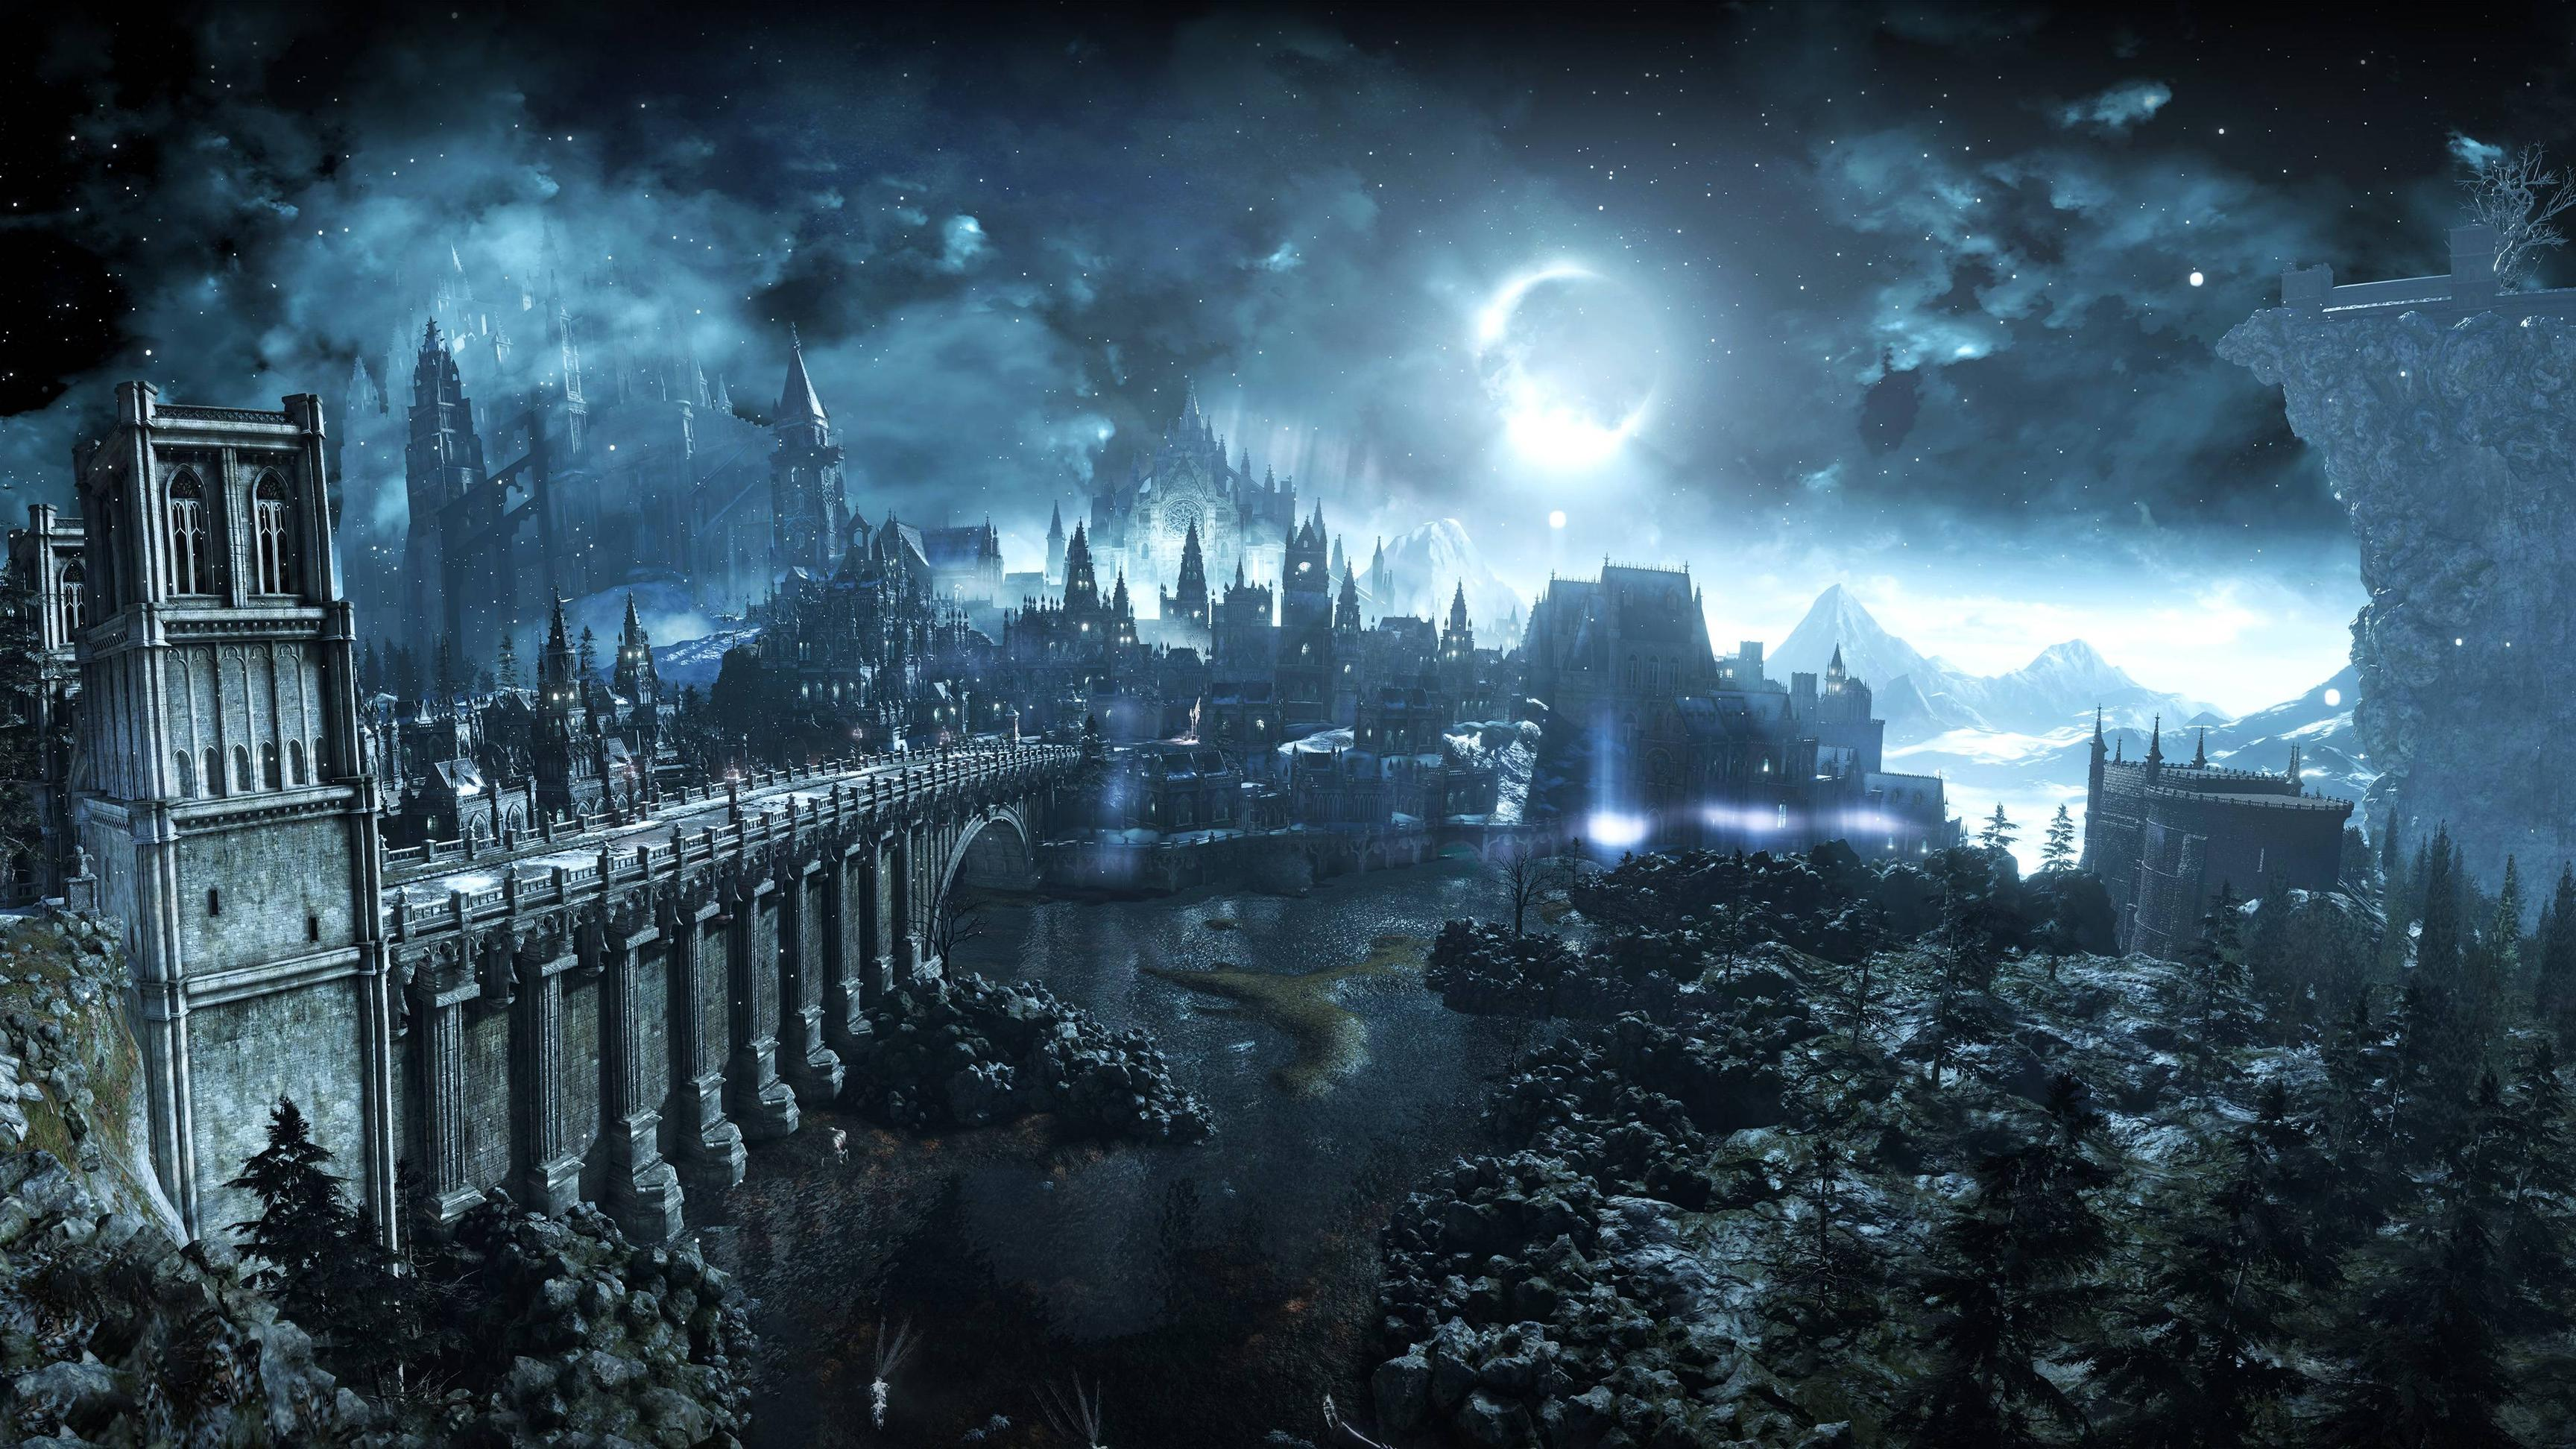 Irithyll-of-the-Boreal-Valley-Dark-Souls